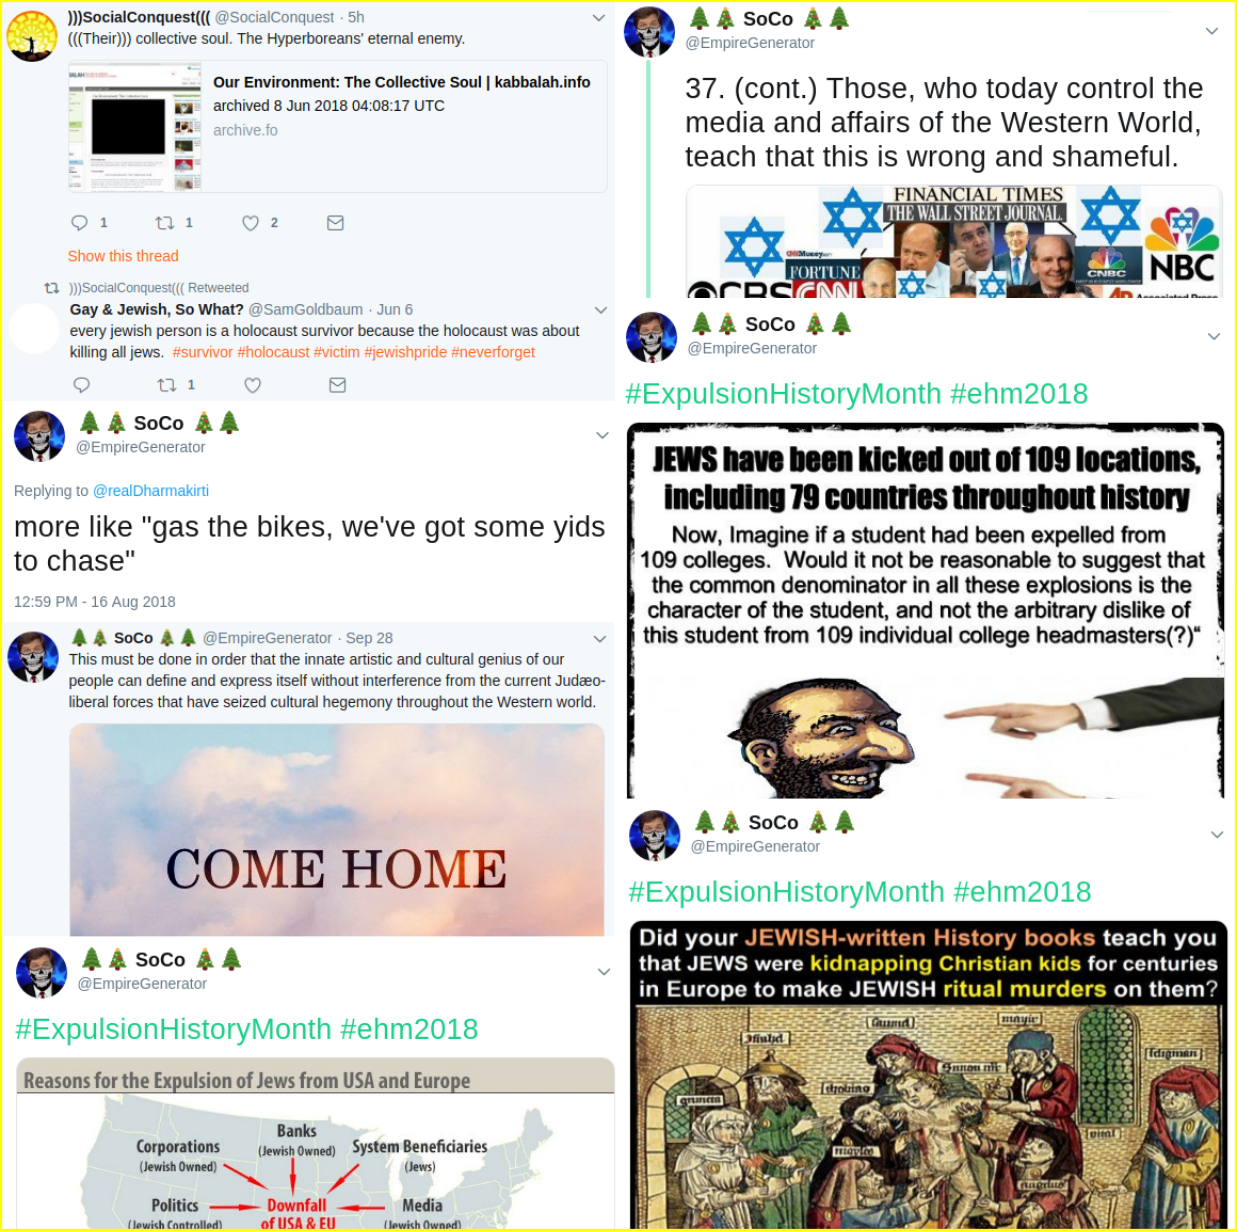 Matt Blais posts extensive anti-Semitic propaganda and neo-Nazi memes